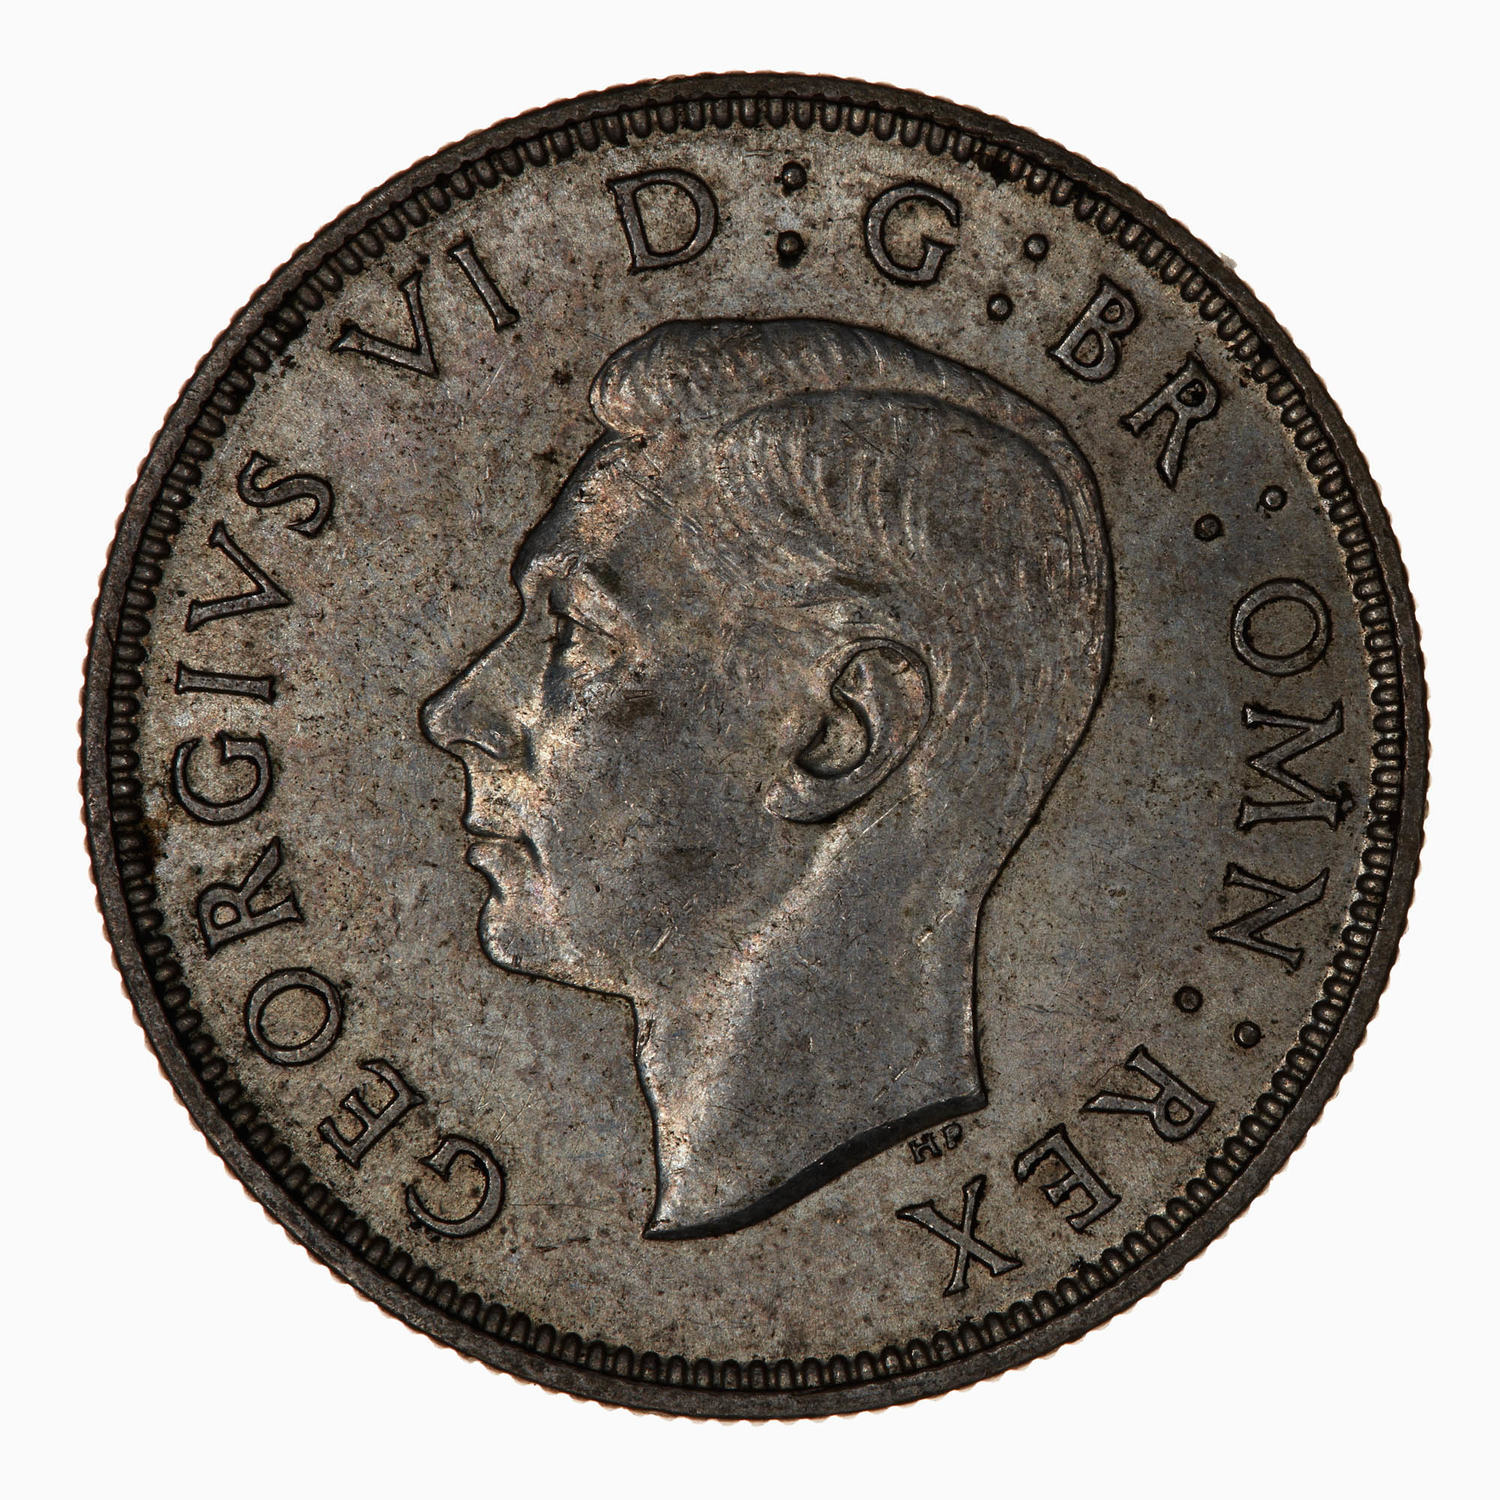 Two Shillings (Florin) 1937: Photo Coin - Florin (2 Shillings), George VI, Great Britain, 1937